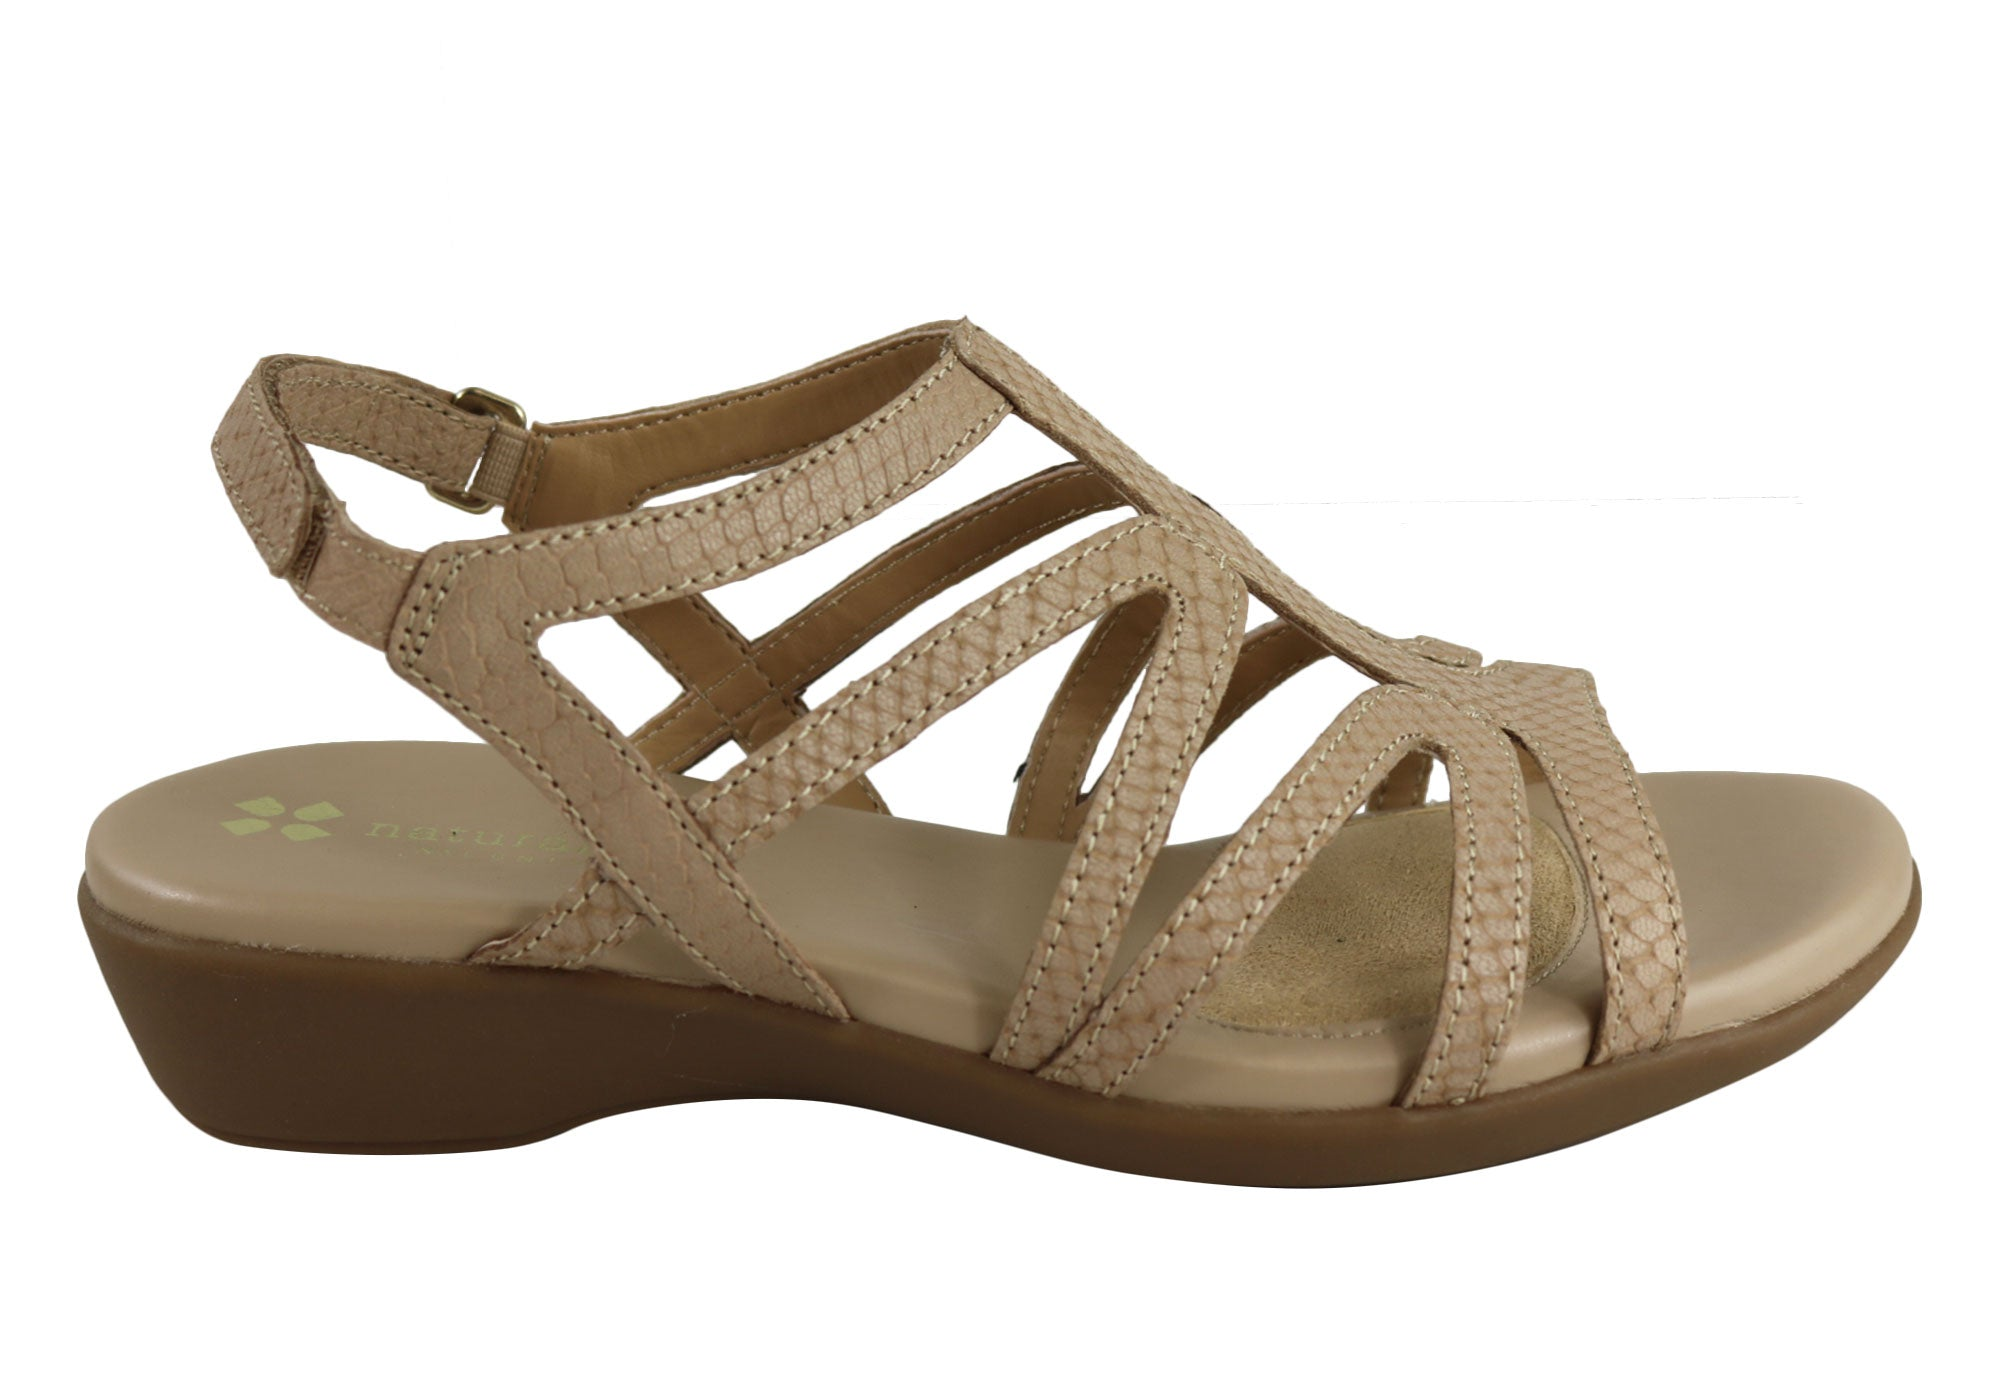 NEW-NATURALIZER-NEELIE-WOMENS-COMFORT-WIDE-FIT-LEATHER-STRAPPY-SANDALS